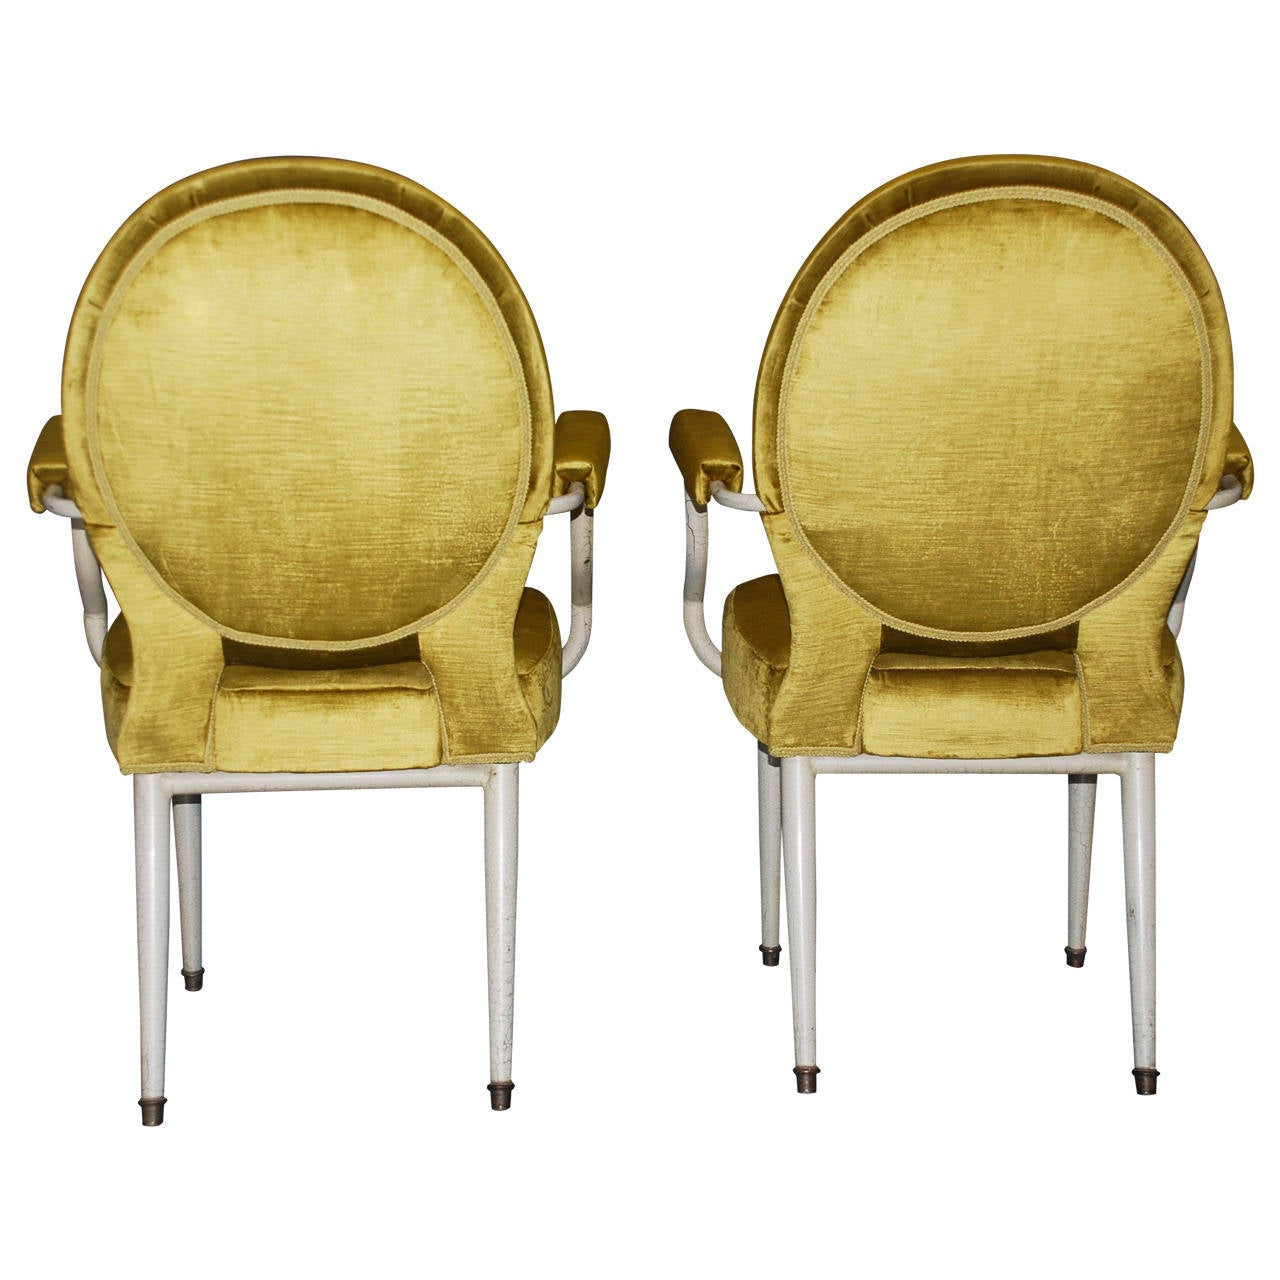 Pair of vintage Italian moderne Louis XVI style armchairs in crackle-painted metal finish with ormolu mounts upholstered in yellow Italian silk velvet.